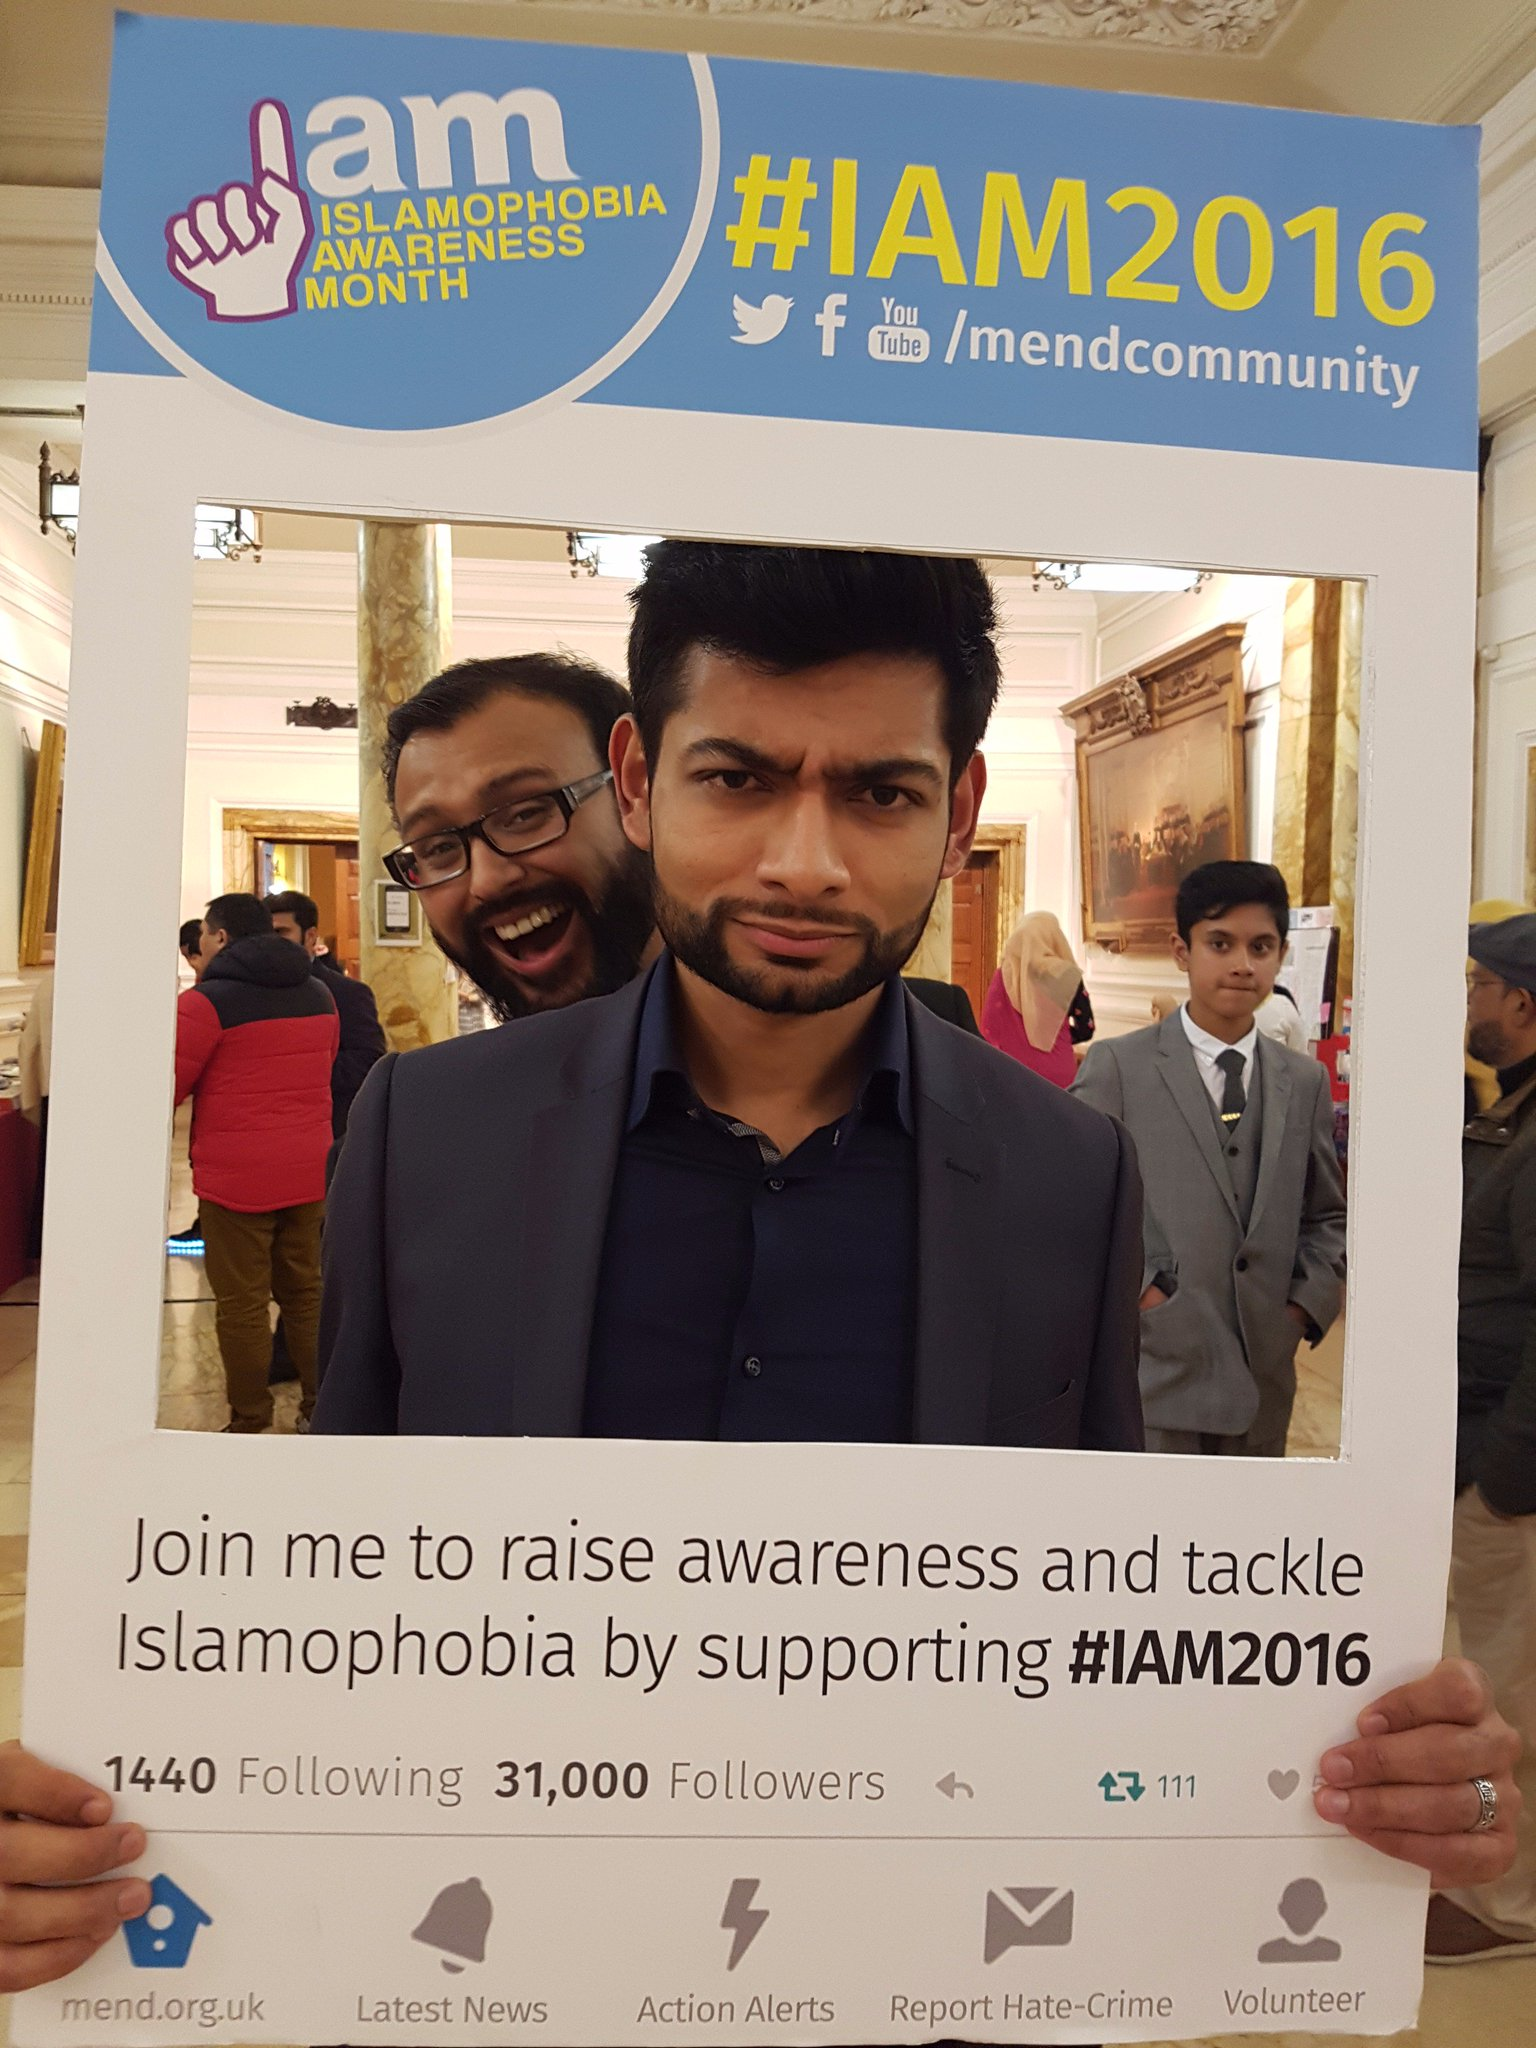 MEND's statement on the HJS's report attempting to thwart efforts to tackle Islamophobia